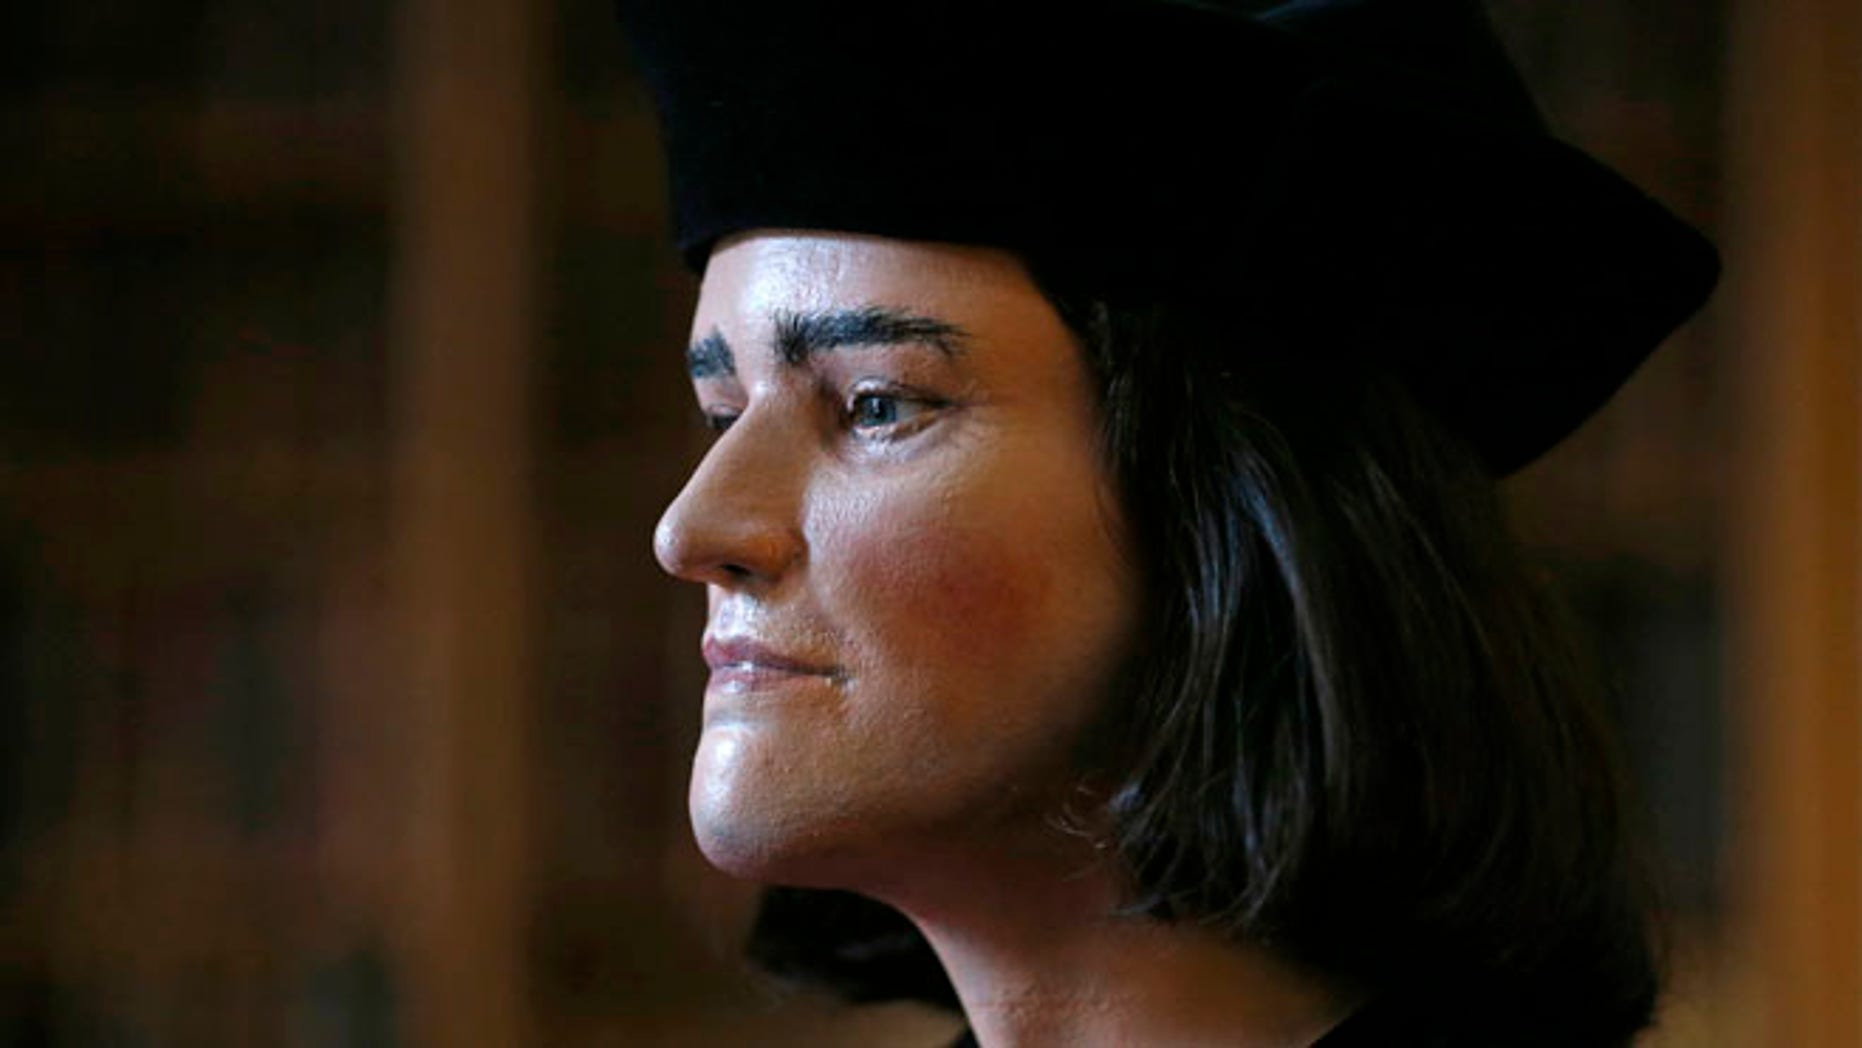 Feb. 5, 2013: A facial reconstruction of King Richard III is displayed at a news conference in central London. (Reuters)